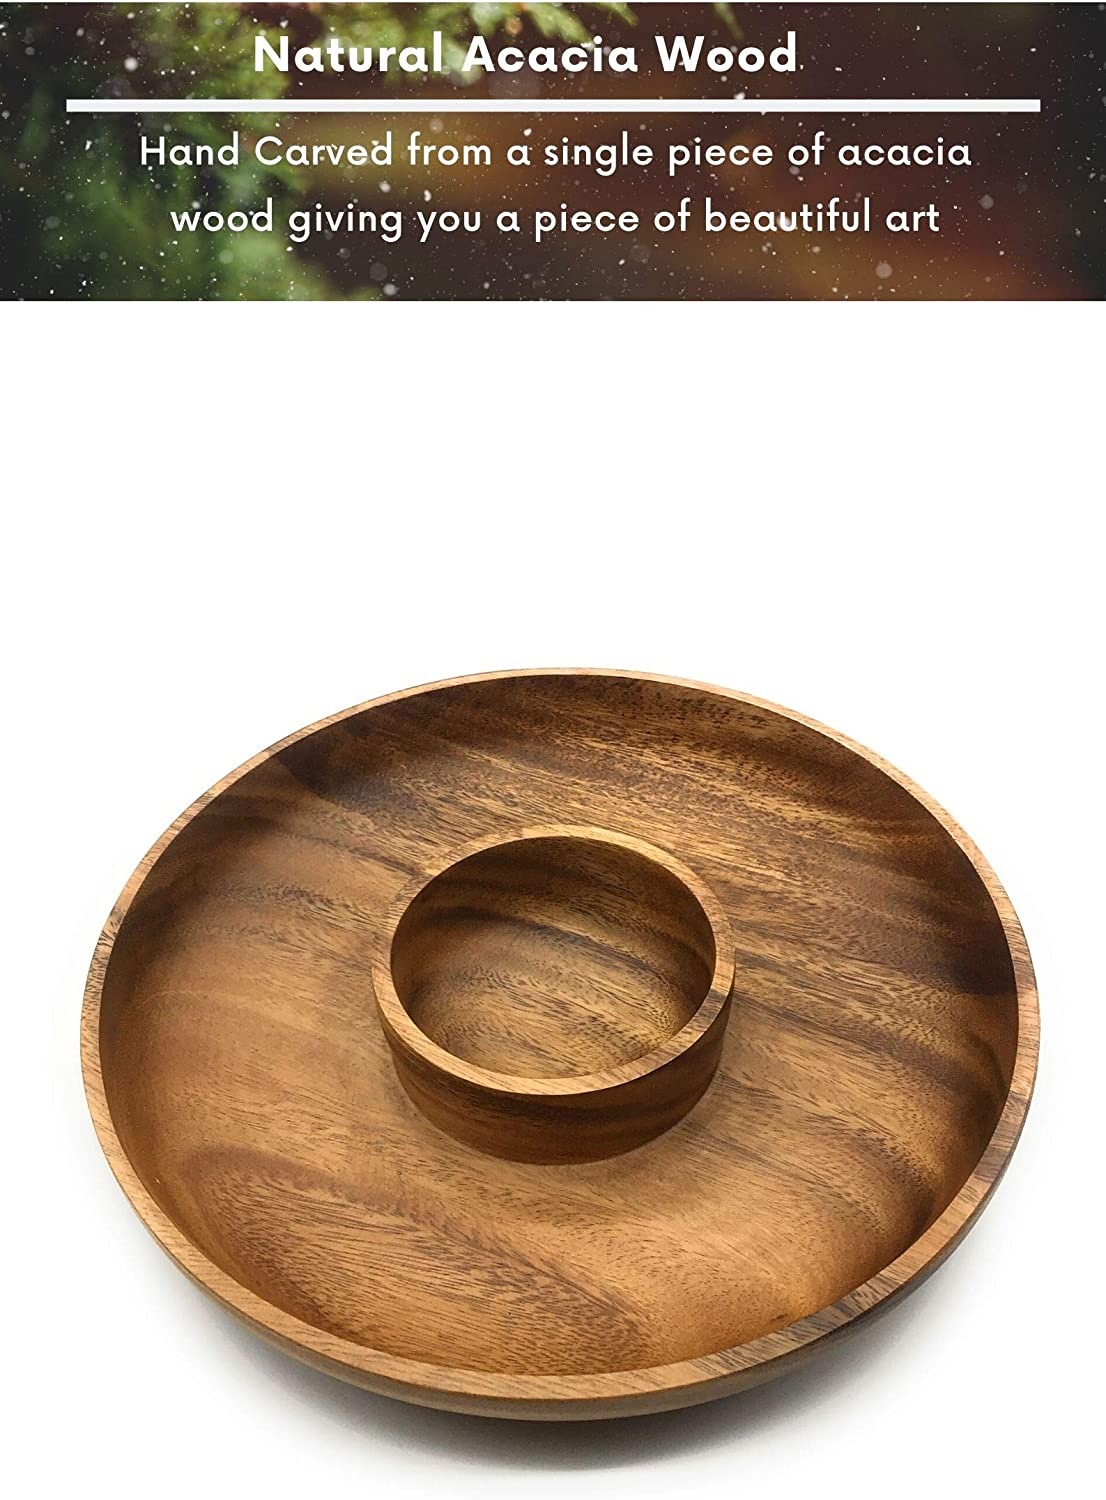 SDS HOME IMPORTS Acacia Wood Chip n Dip Bowl For Salsa and Chips Party Elegant Tray Round 9 WIDE 4 Dipping Hole